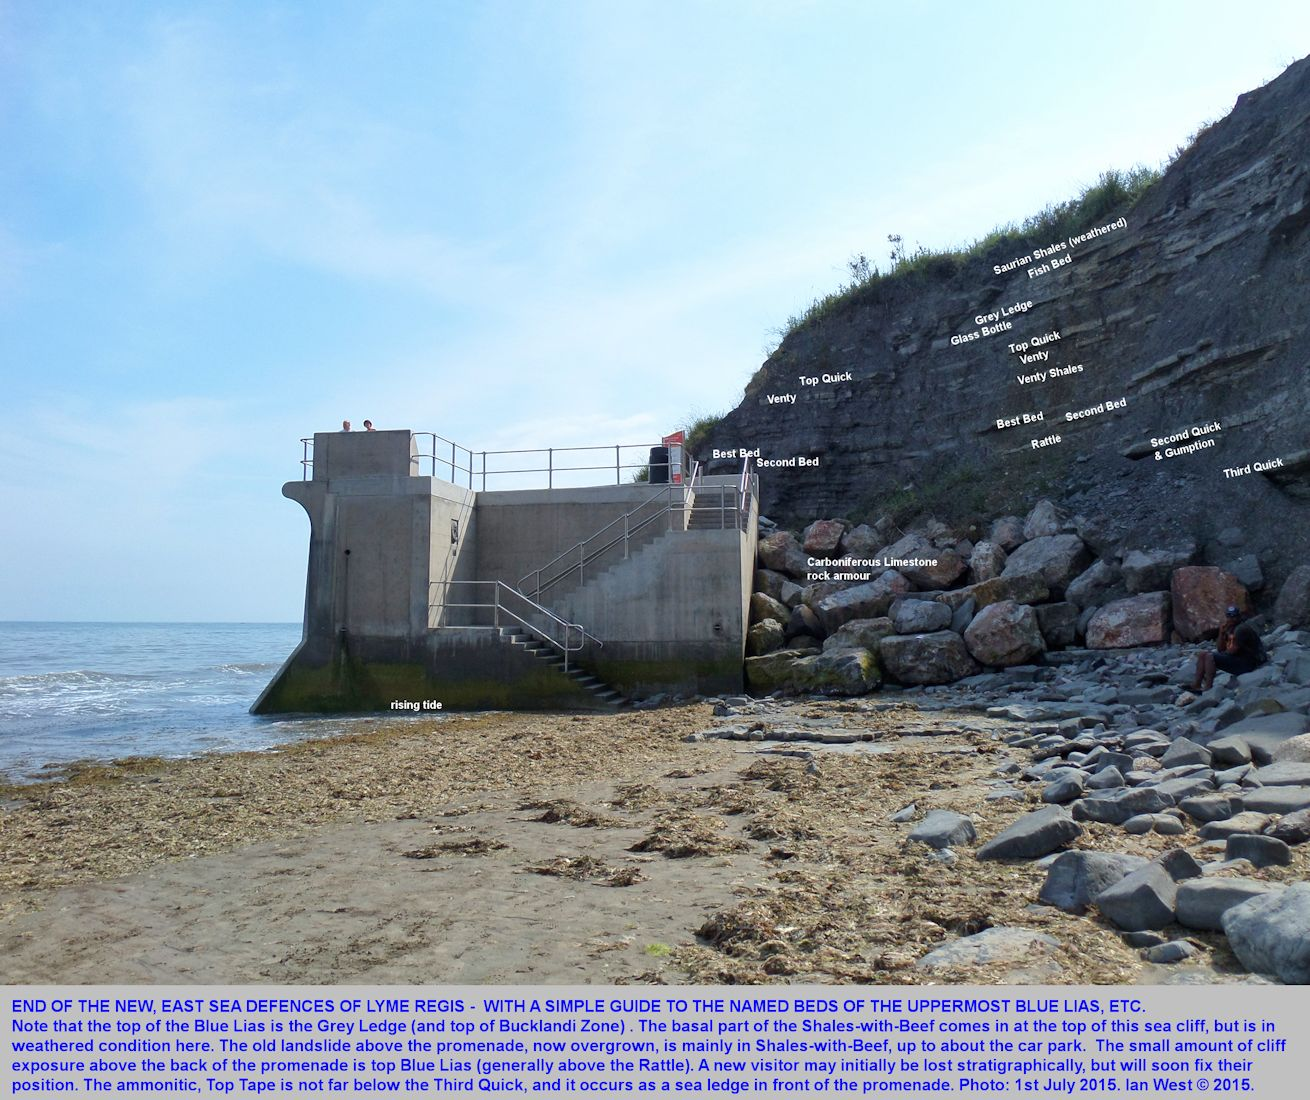 The named beds of the upper part of the Blue Lias at the end of the east sea defences and new promenade, Lyme Regis, Dorset, 1st July 2015, with rising tide